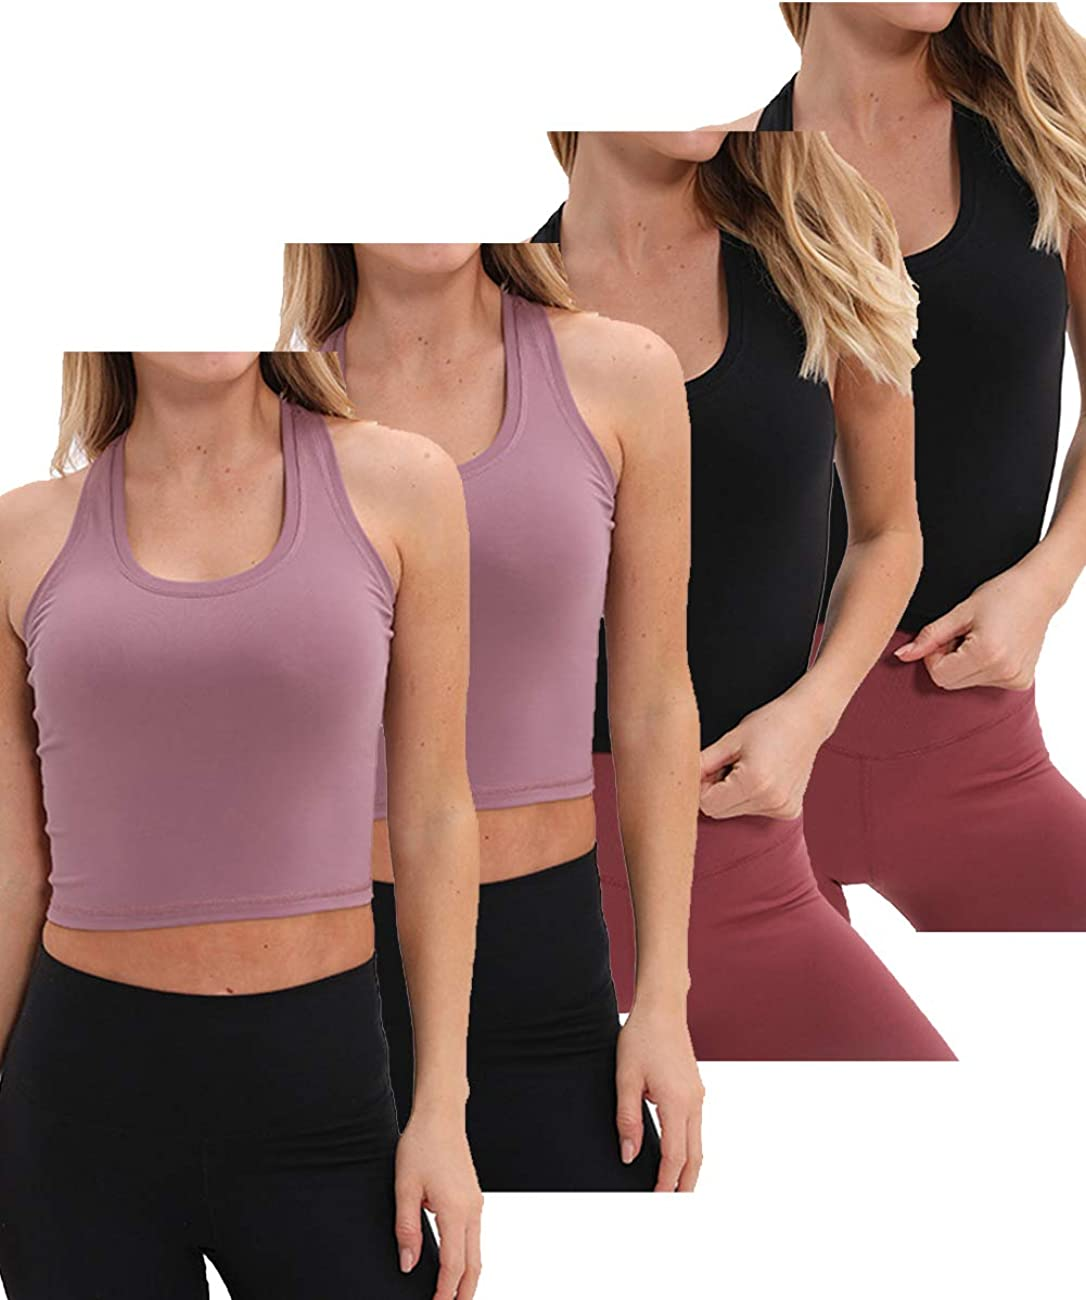 Geyoga 8 Pieces Basic Crop Tank Tops Sleeveless Racerback Crop Sport Cotton Top for Women